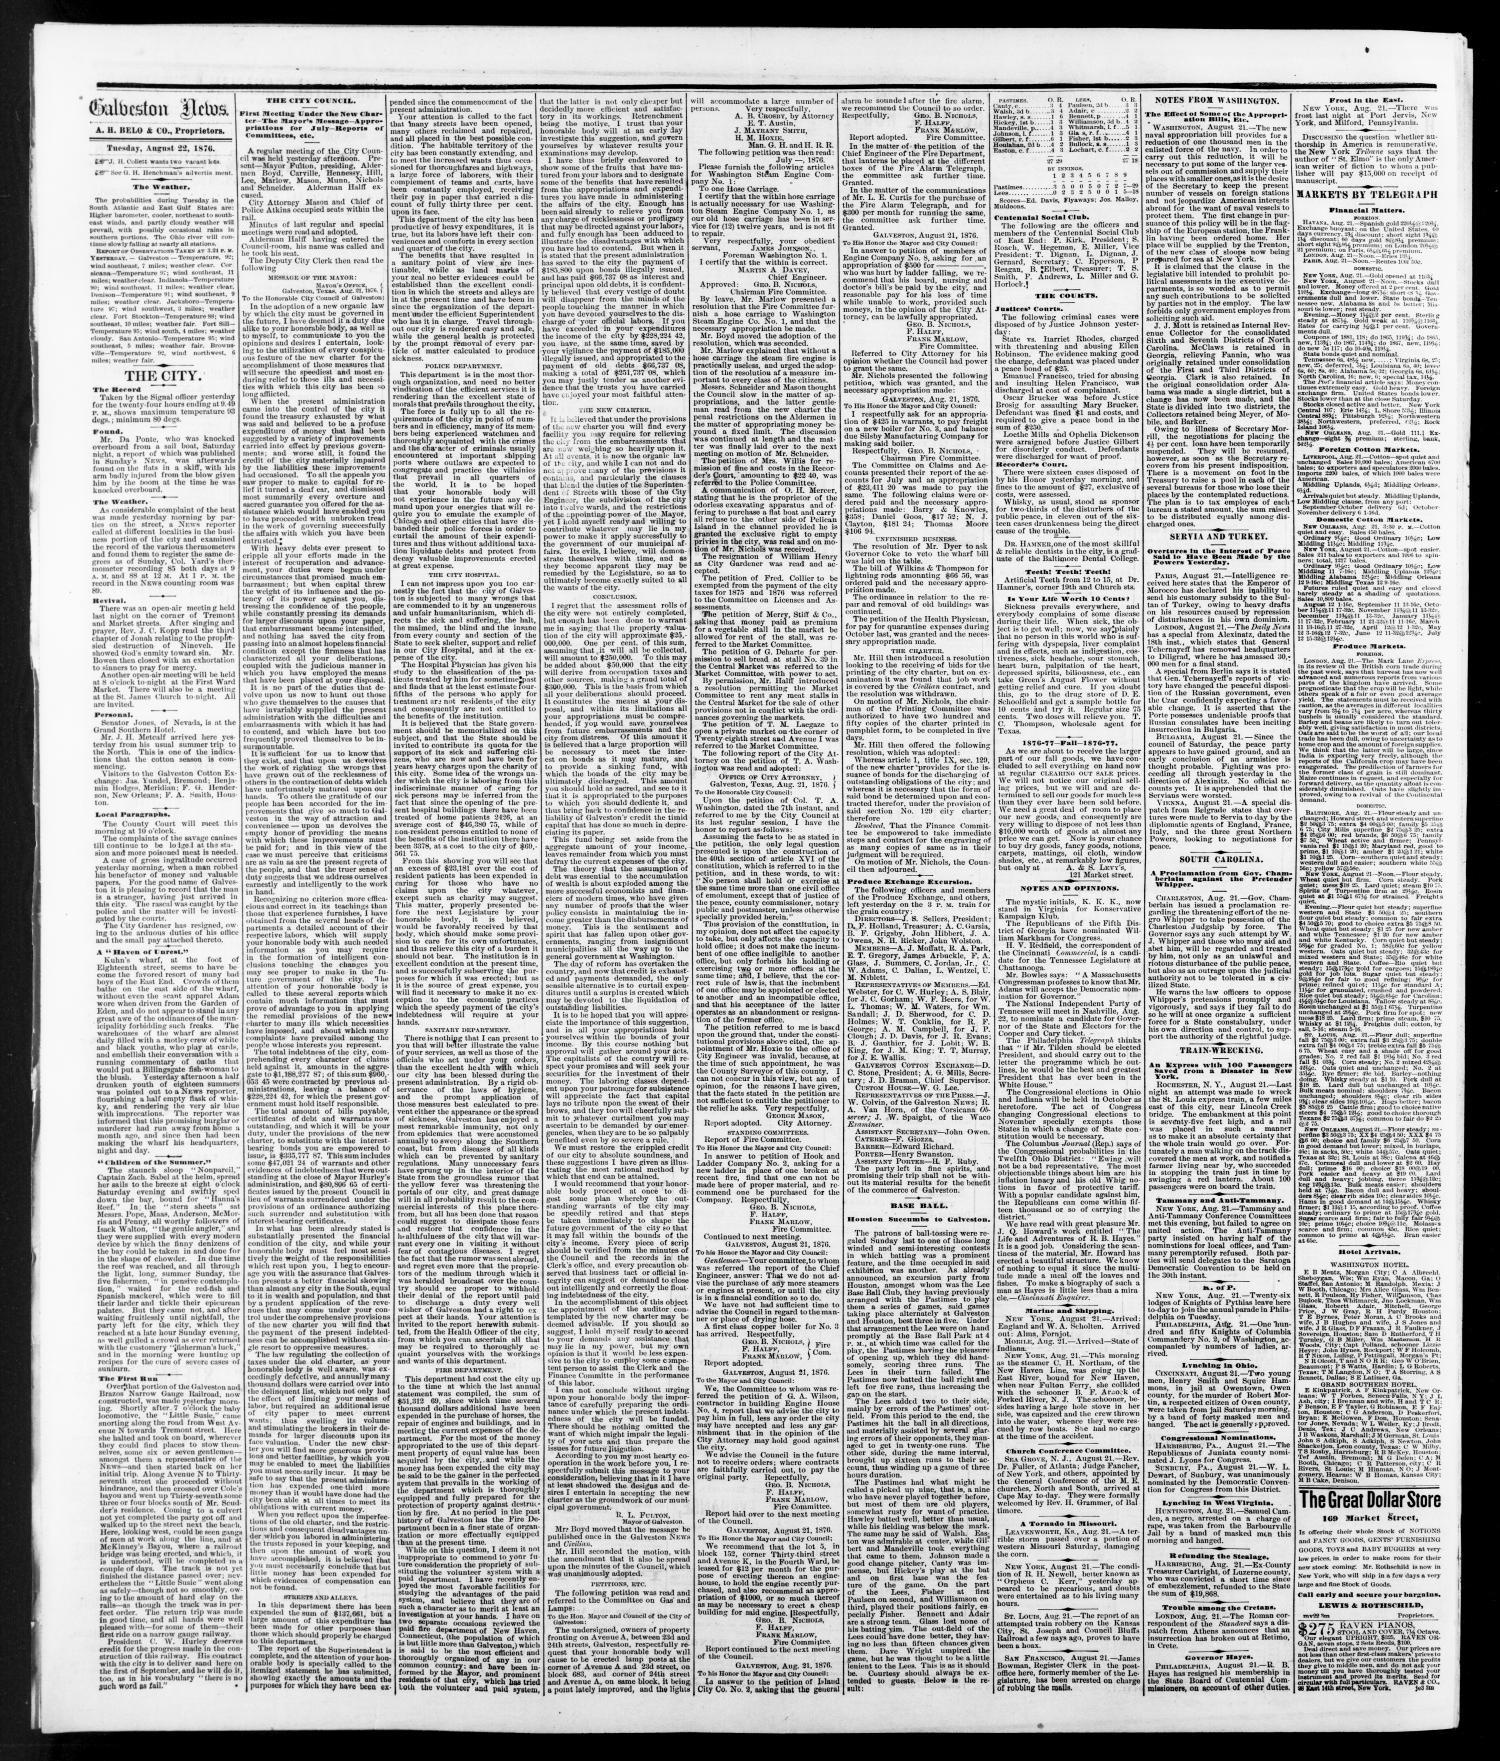 The Galveston Daily News. (Galveston, Tex.), Vol. 35, No. 130, Ed. 1 Tuesday, August 22, 1876                                                                                                      [Sequence #]: 4 of 4